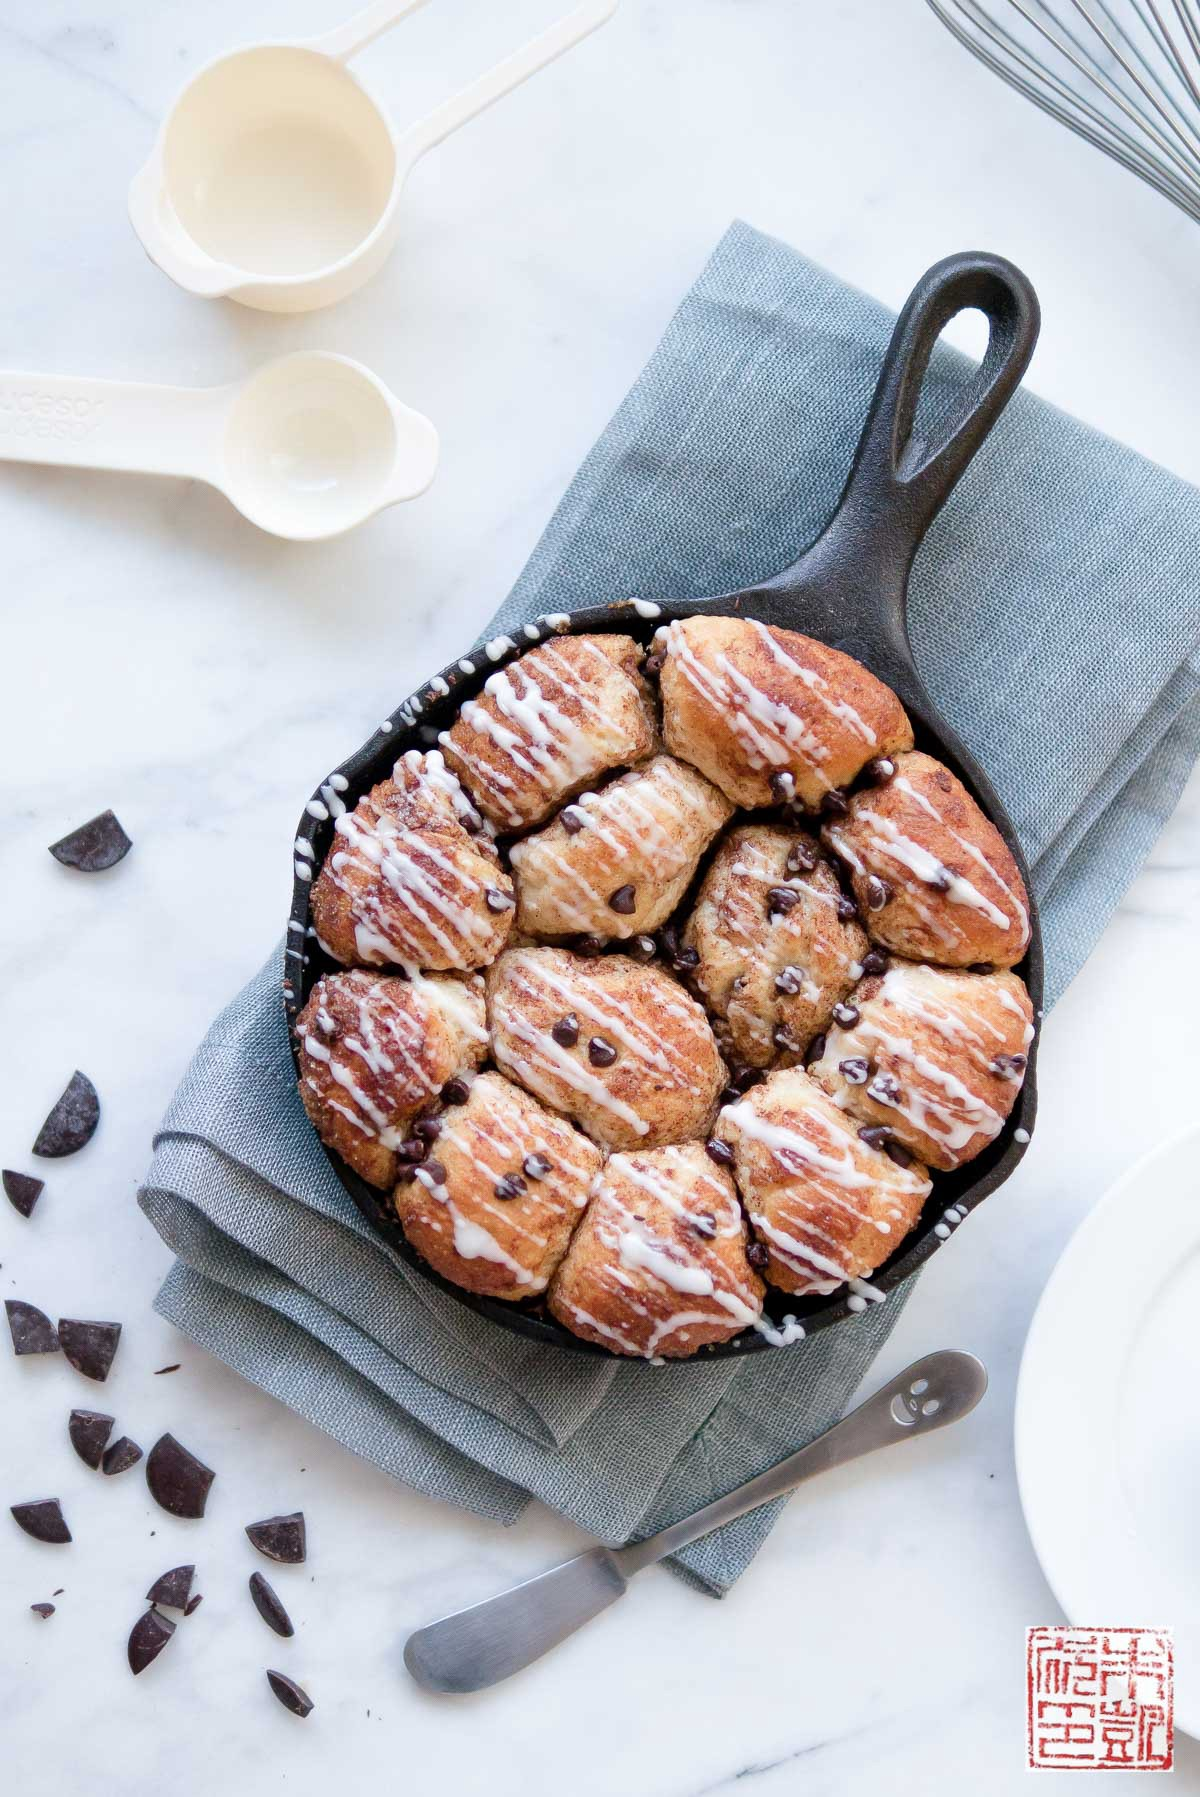 Don't Panic, Just Bake: 12 Recipes to Try From Bay Area Bakers